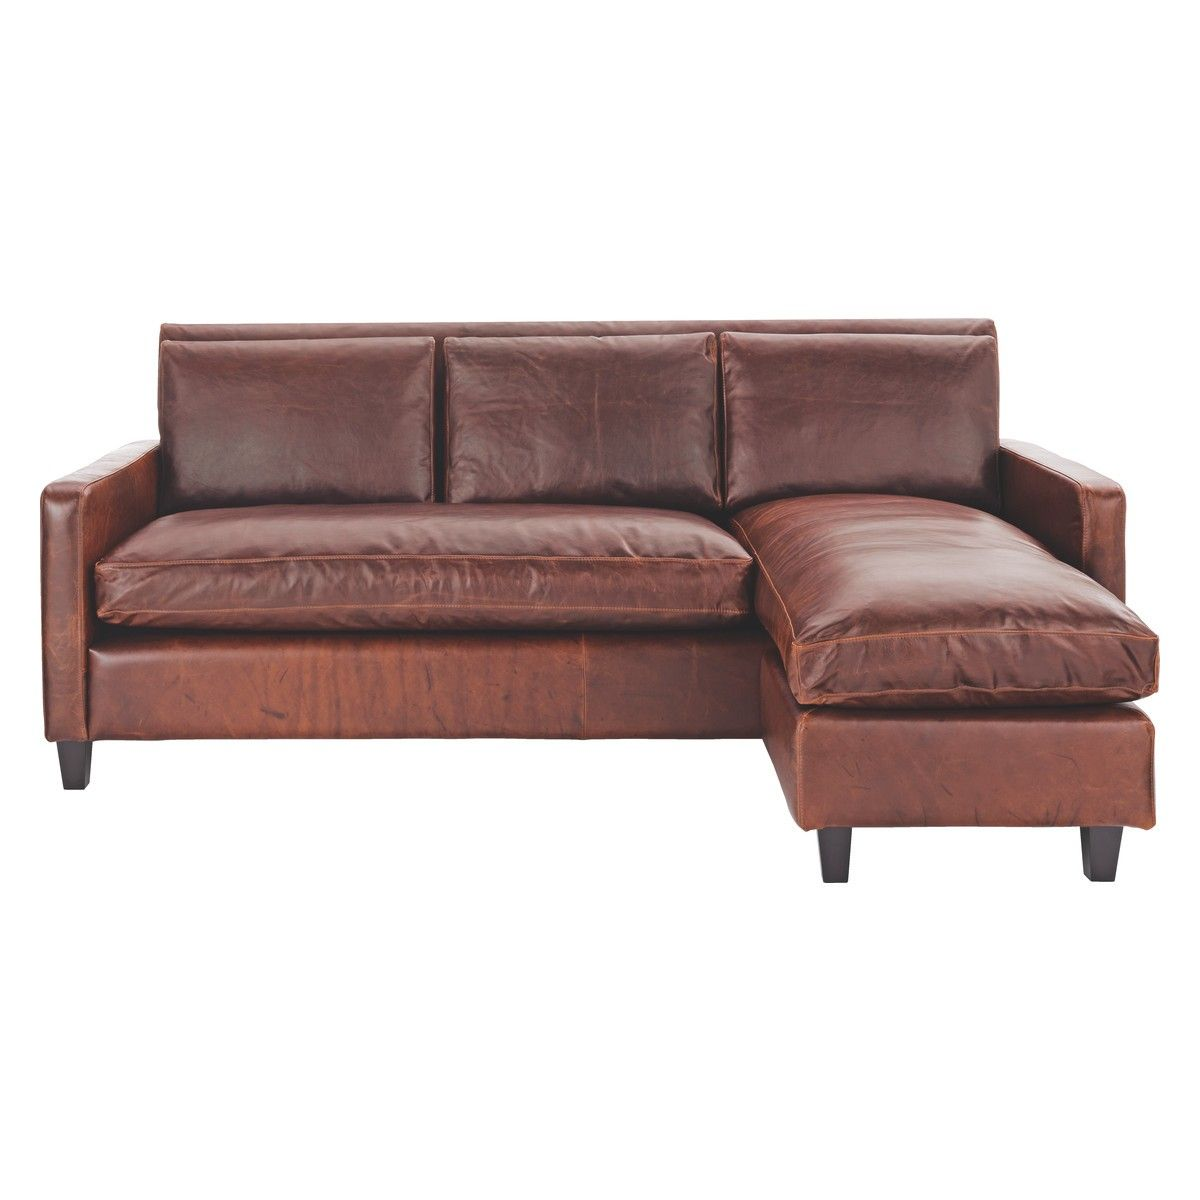 CHESTER Tan Leather 3 Seater Chaise Sofa, Dark Stained Feet